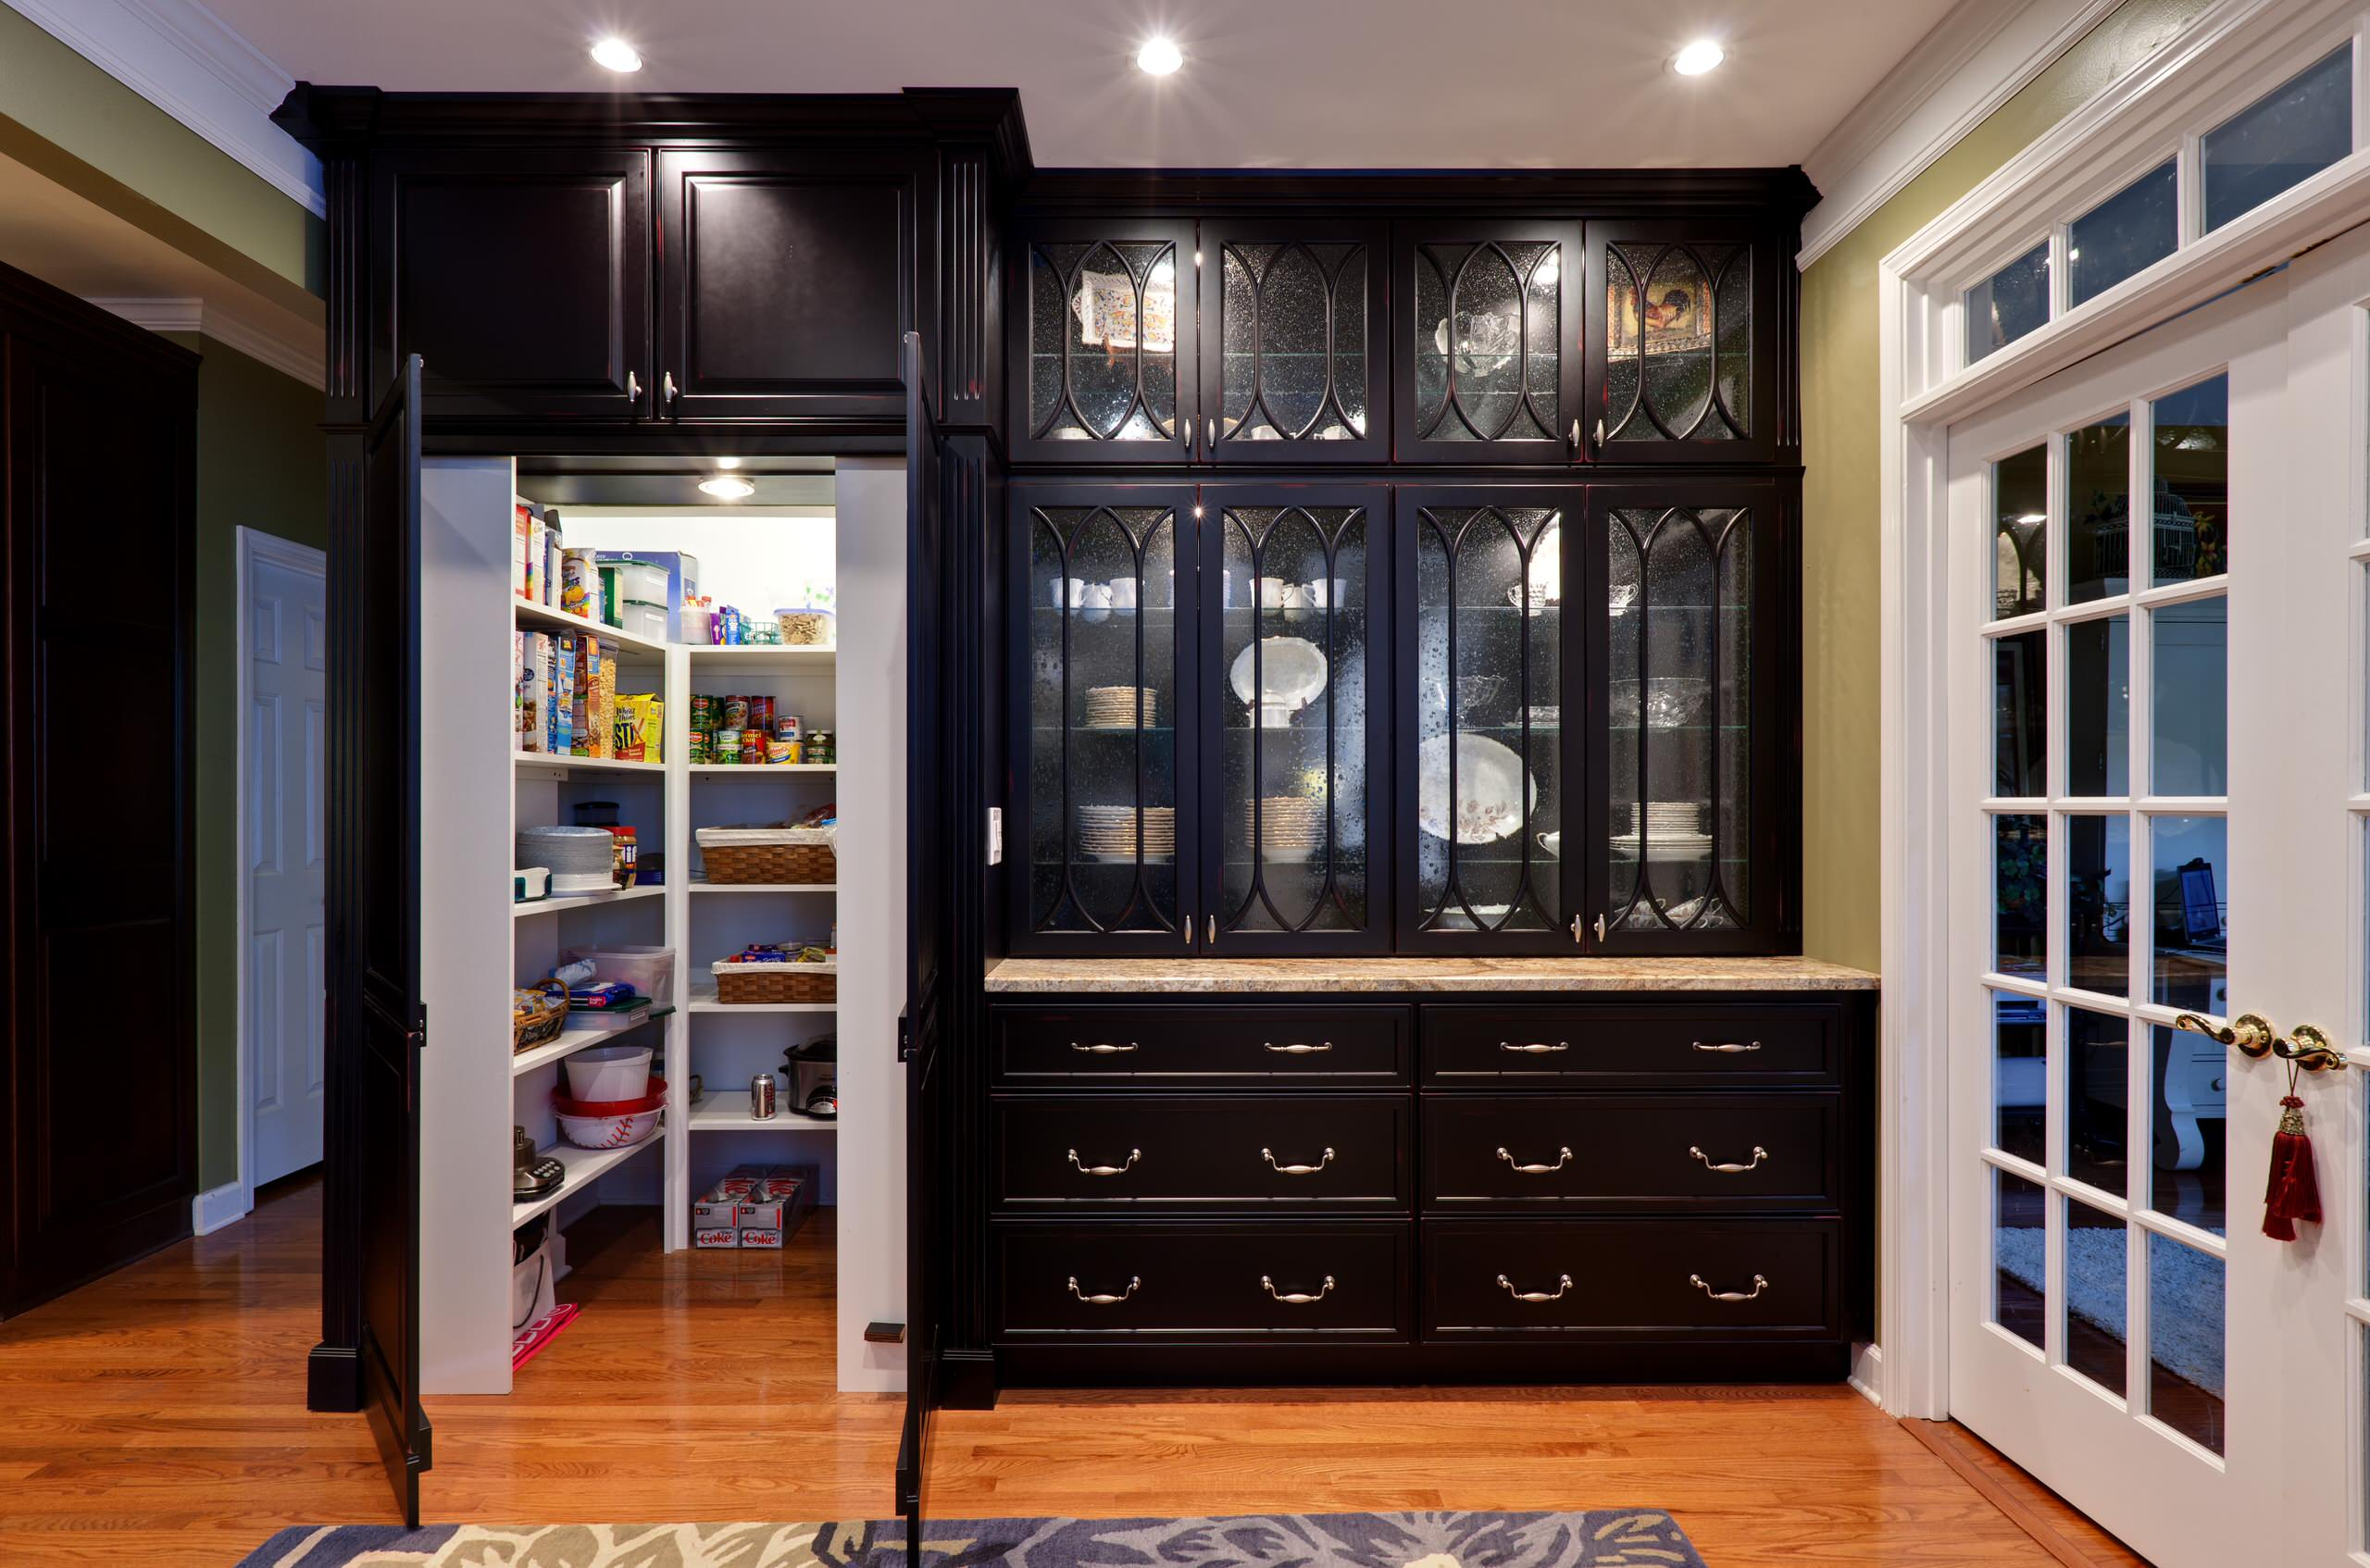 75 Beautiful Kitchen Pantry With Black Cabinets Pictures Ideas March 2021 Houzz